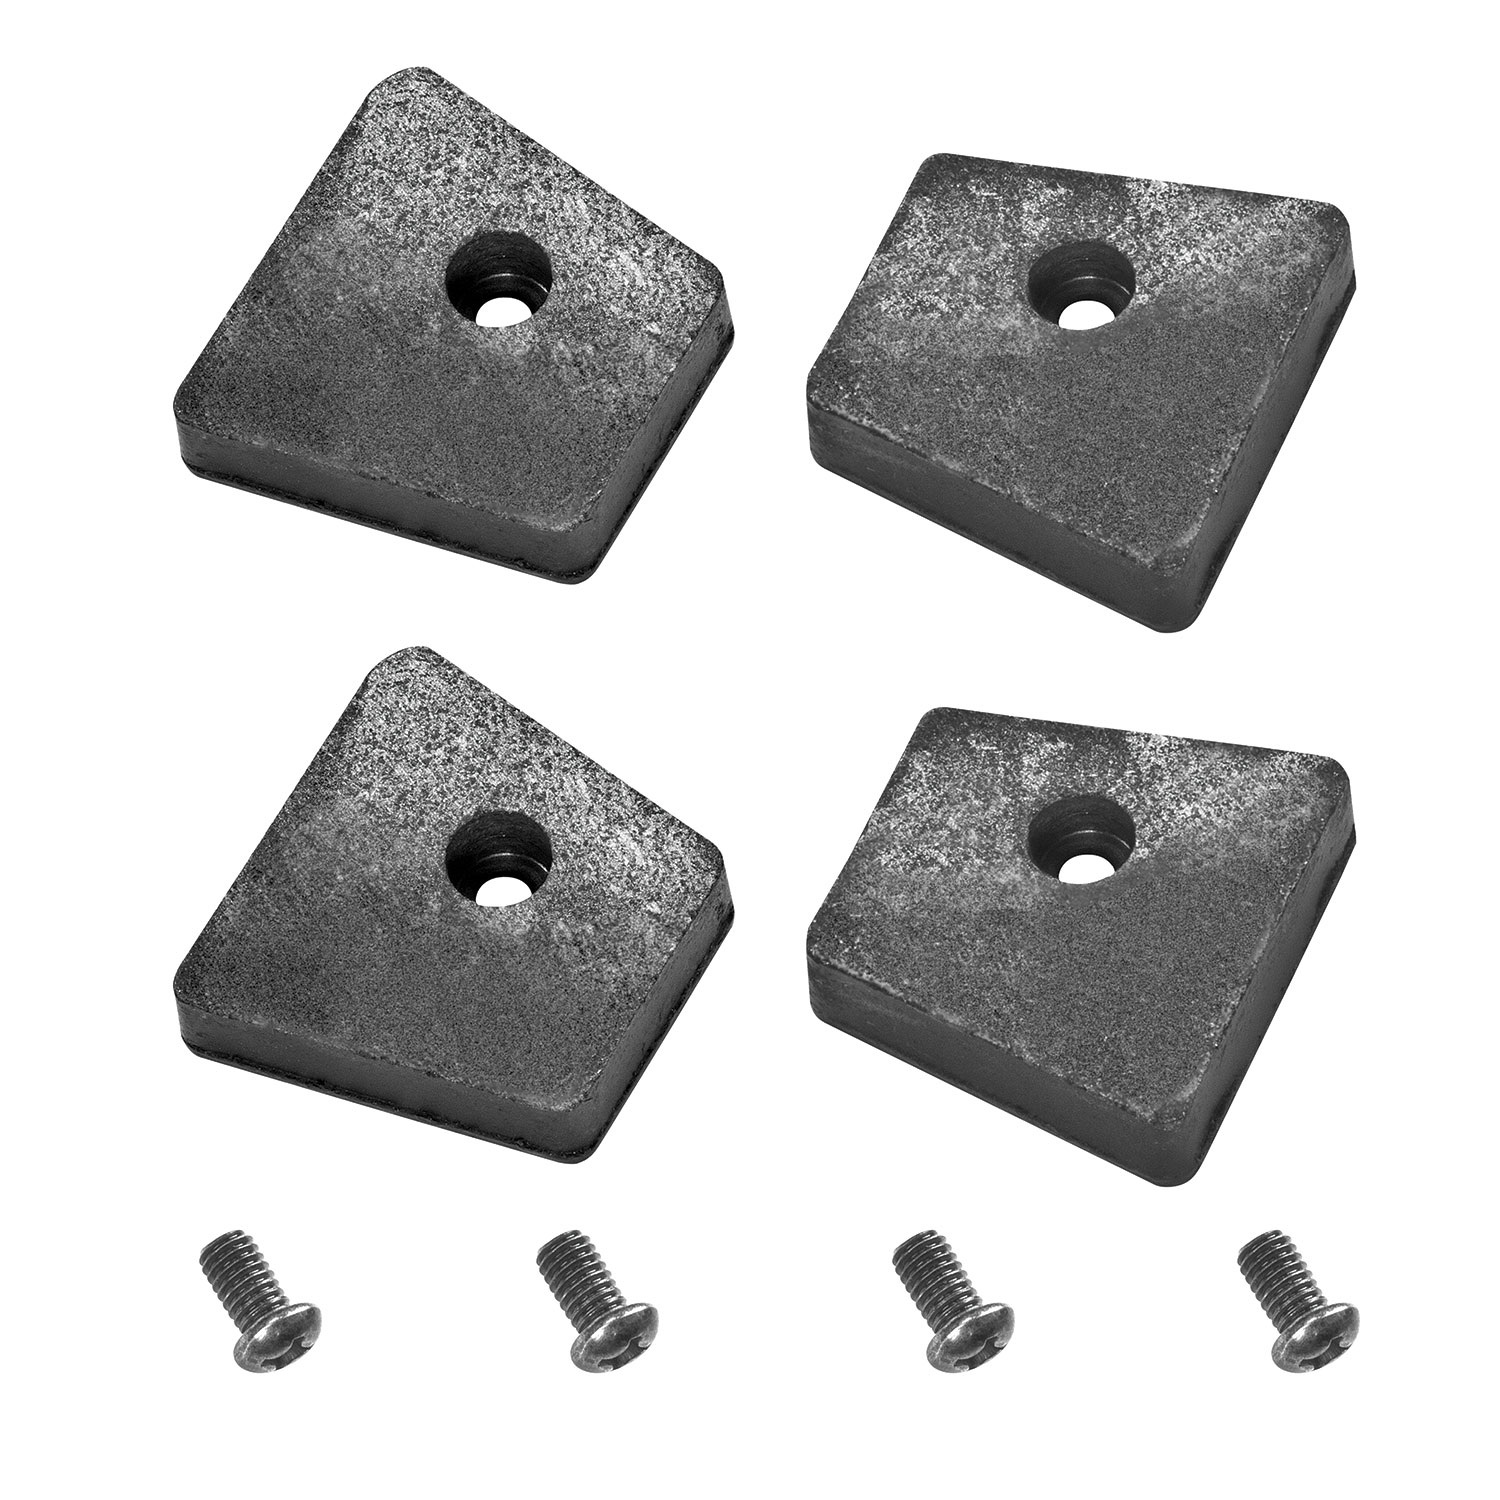 Replacement Part-Reese Sc Friction Pads with Screws Replacement Auto Part, Easy to Install